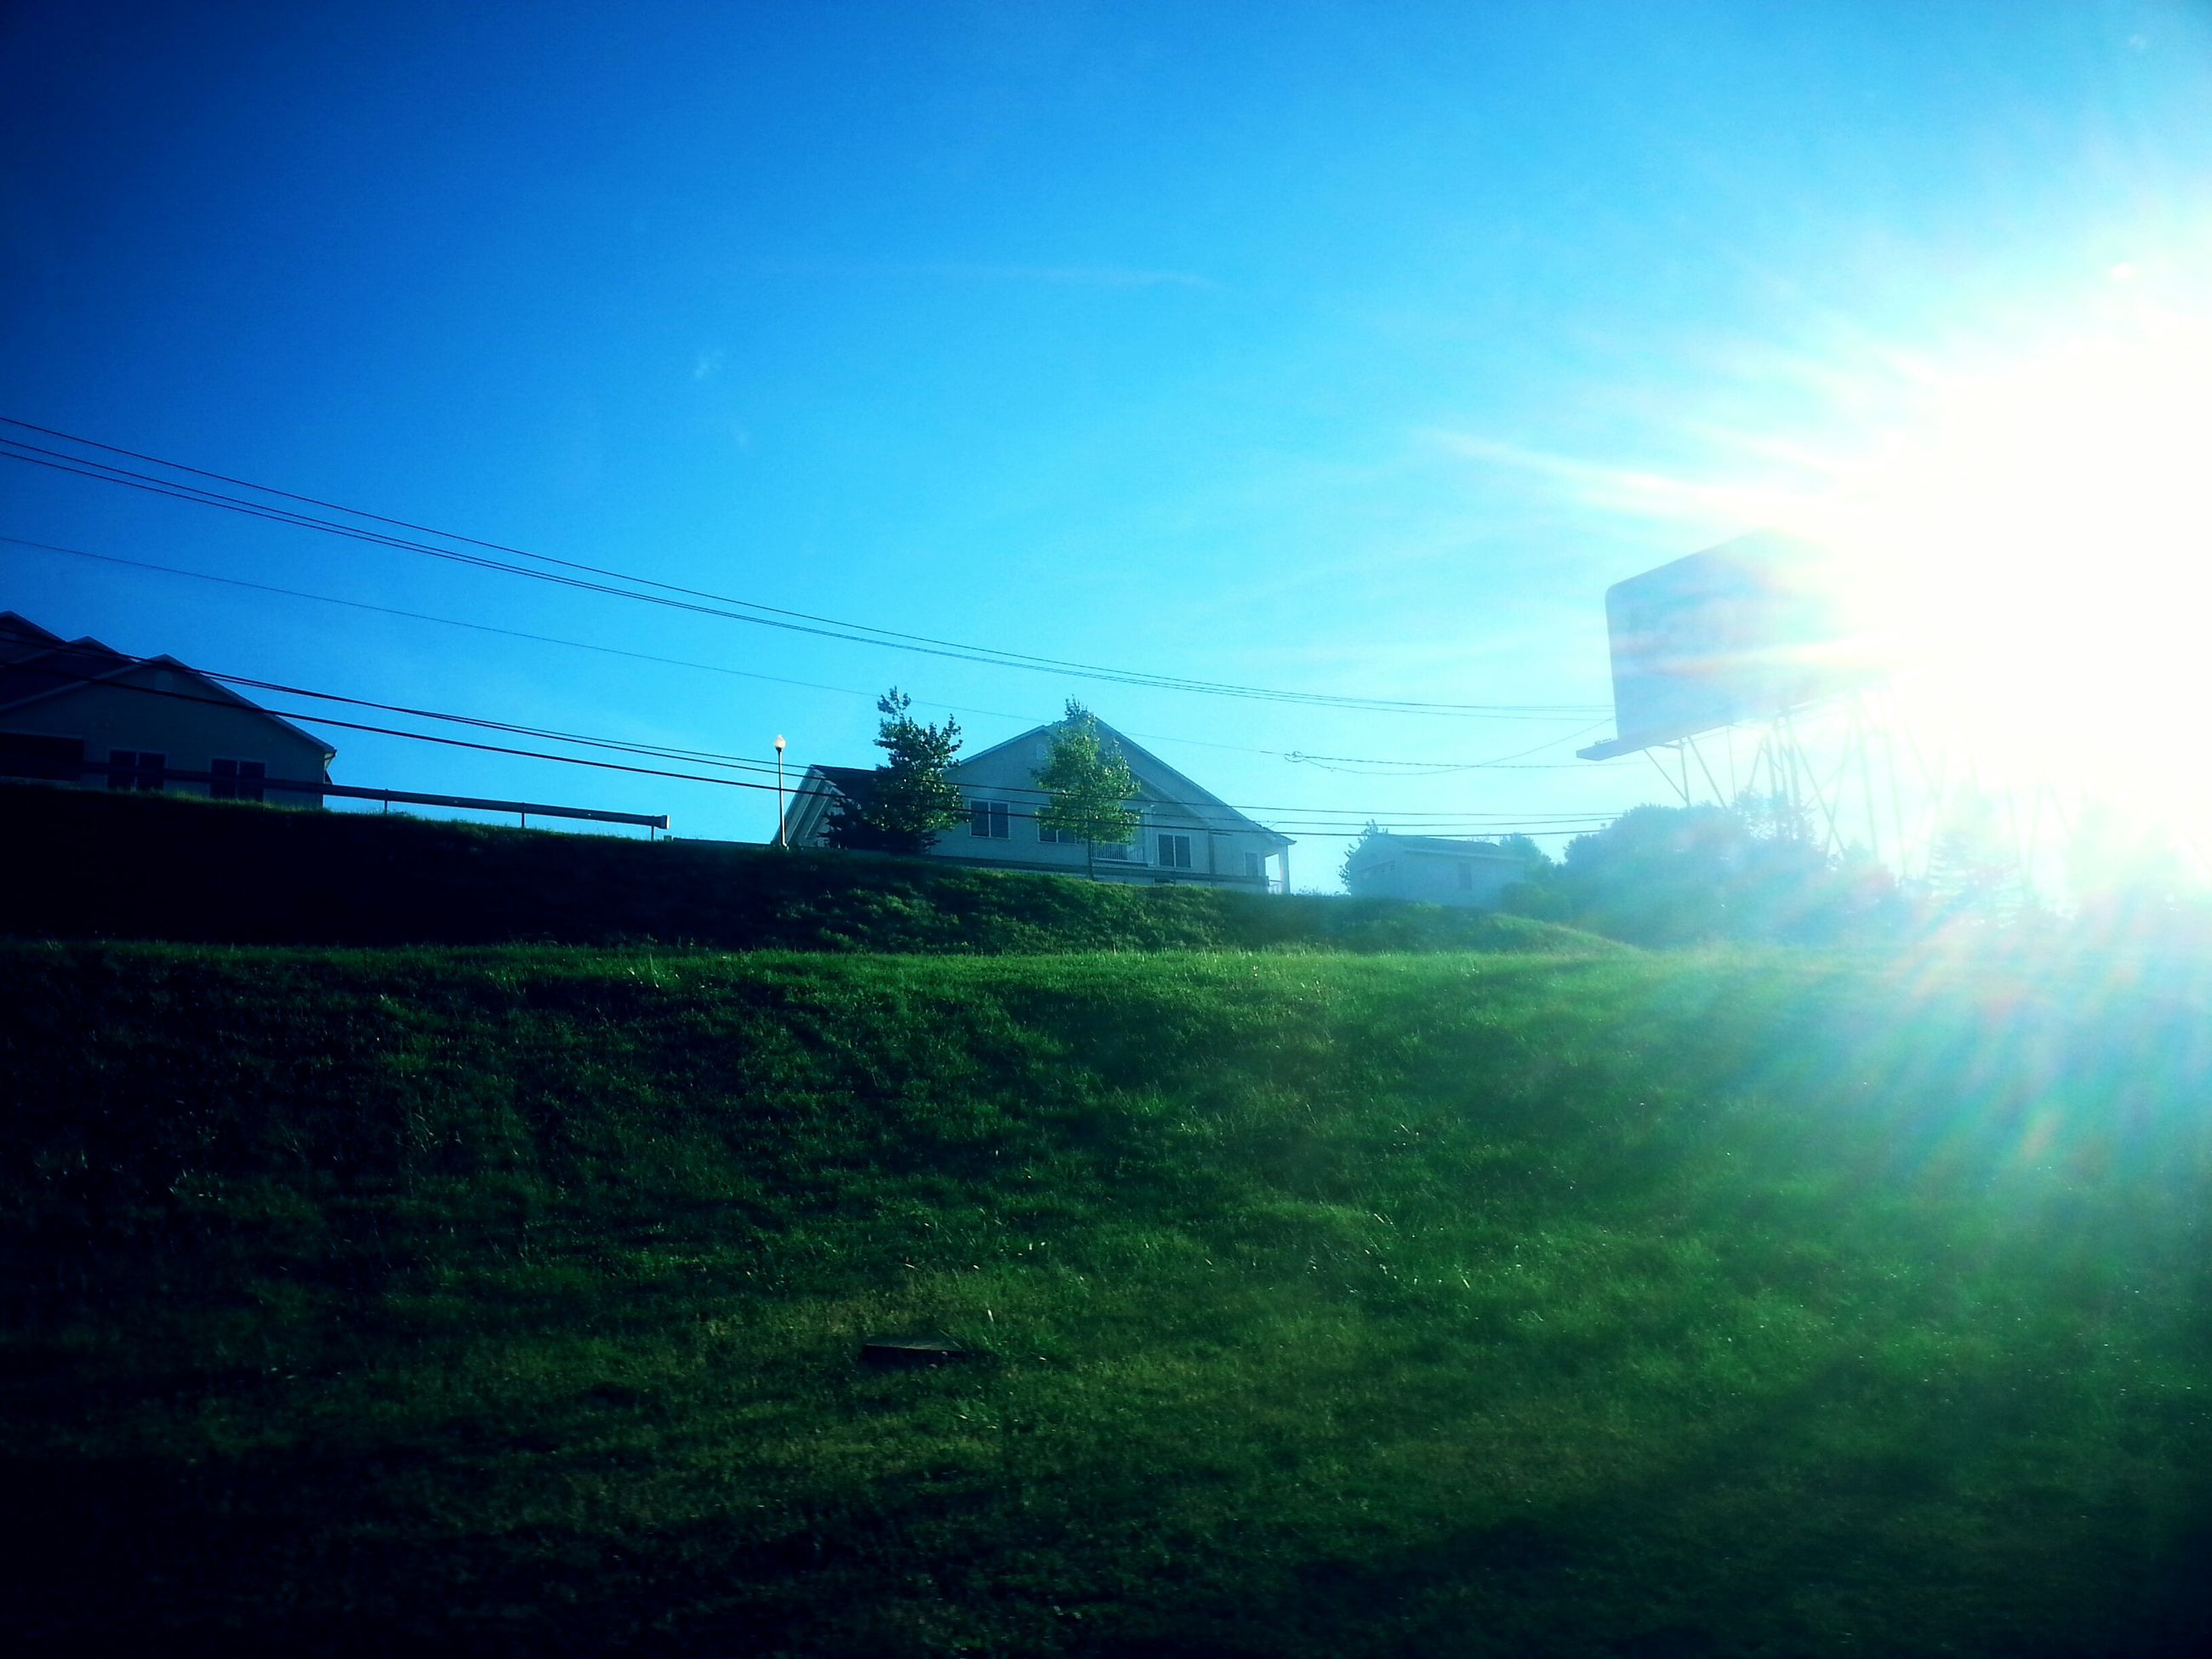 building exterior, architecture, built structure, sun, sunlight, sunbeam, house, lens flare, sky, blue, clear sky, low angle view, grass, power line, outdoors, field, no people, residential structure, bright, nature